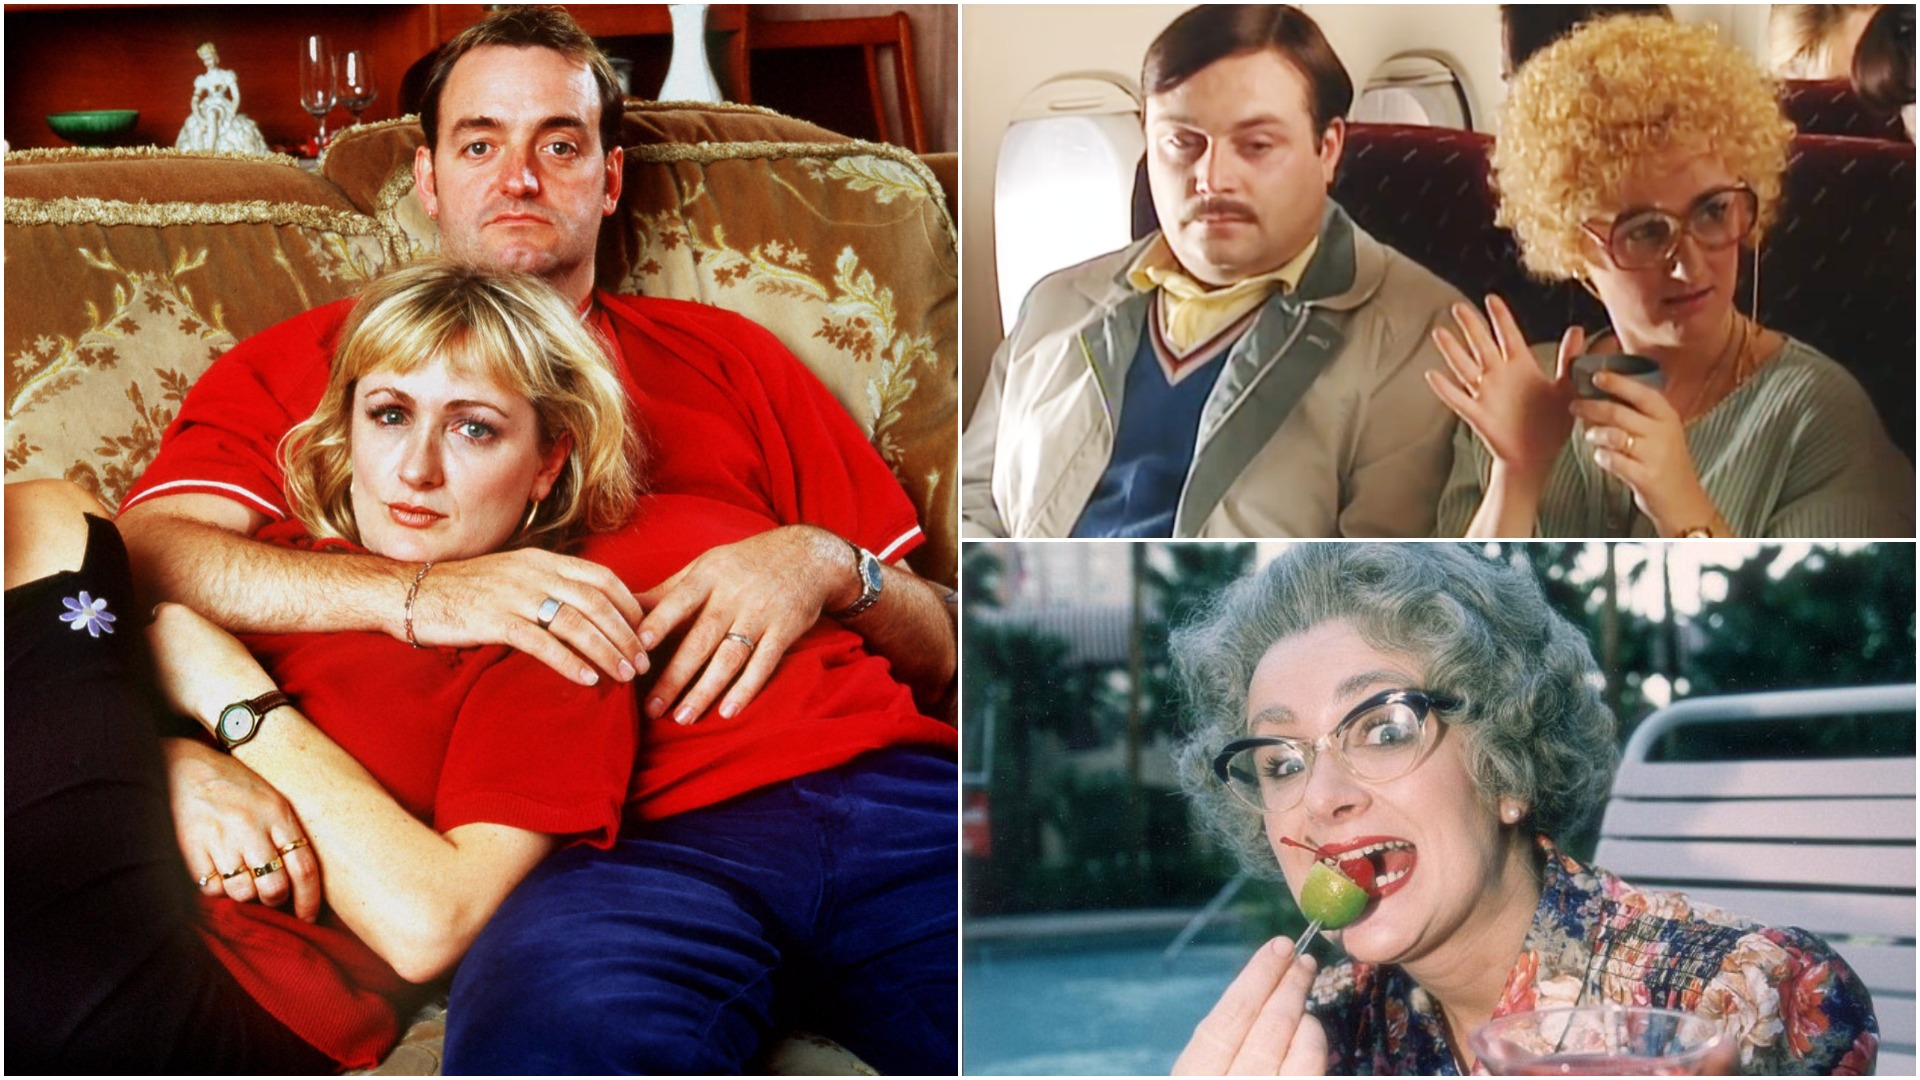 Caroline Aherne: 5 lovable and loathsome roles to remember the wonderful actress by